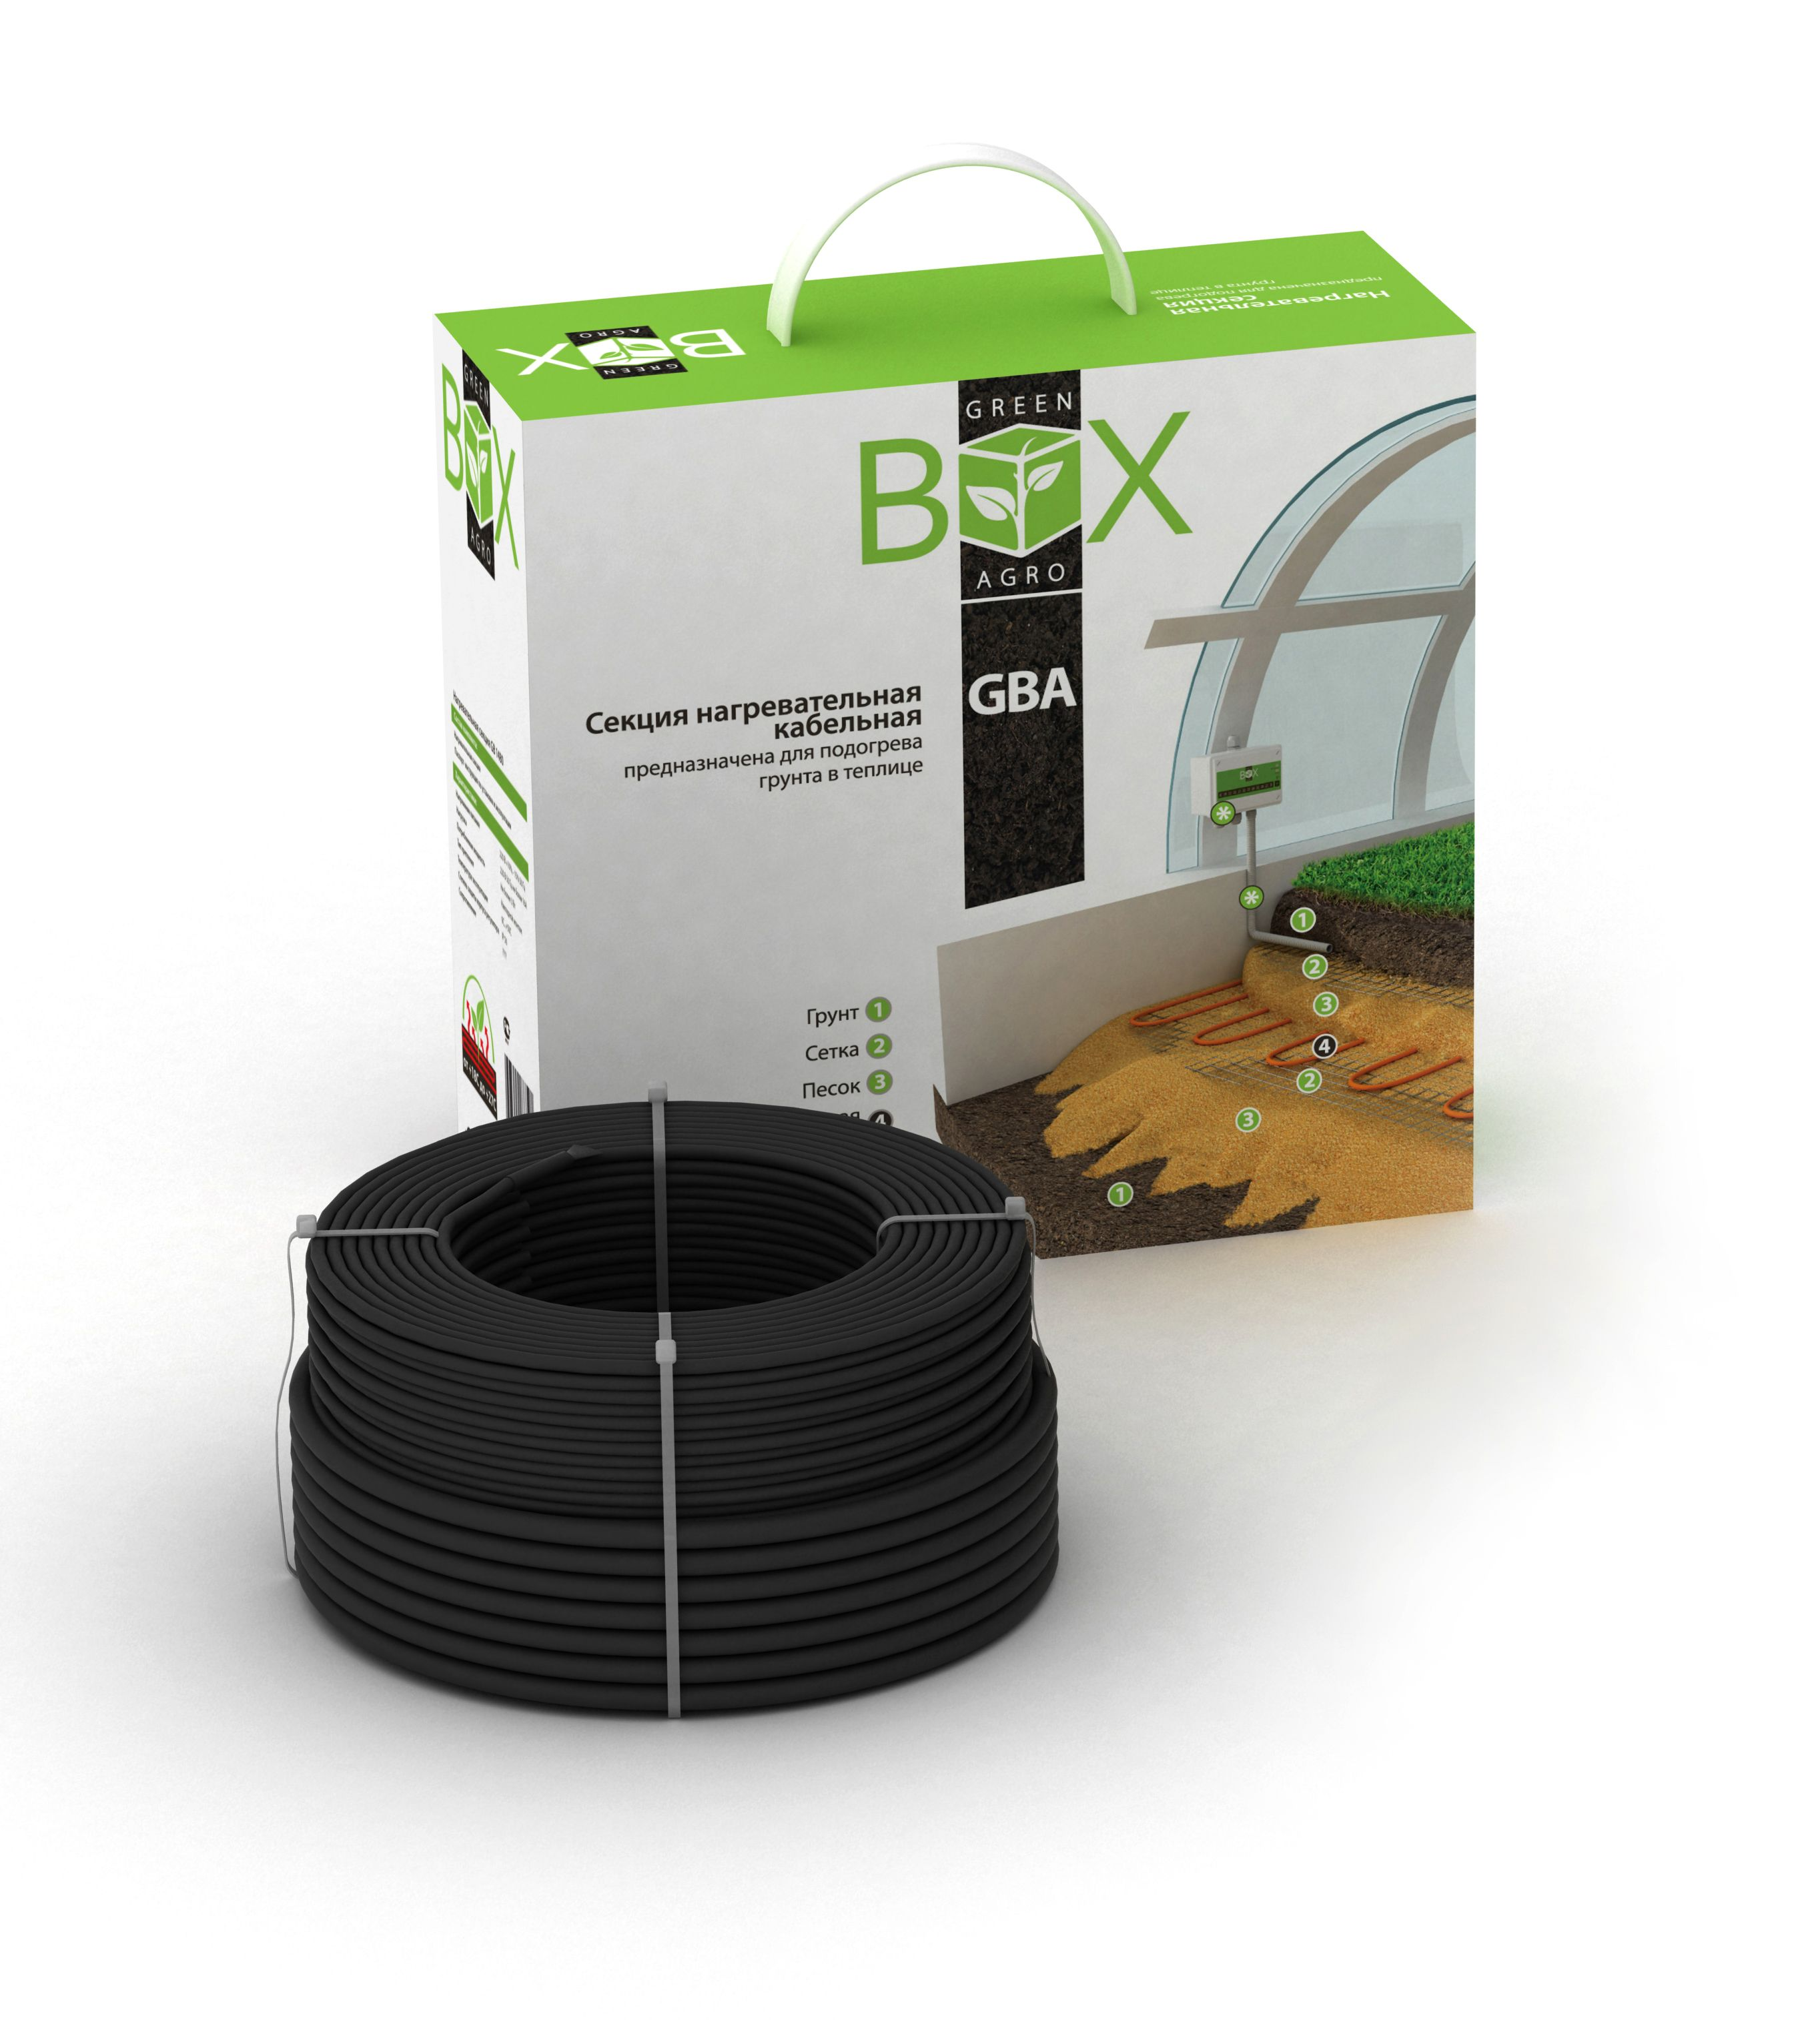 Warm soil in greenhouses Soil heating system Green Box Agro 14GBA-980w-10m2 garden cultivation country house electric heating 600w 32m twin core heating cable for power saving soil heating protection system wholesale hc2 18 600